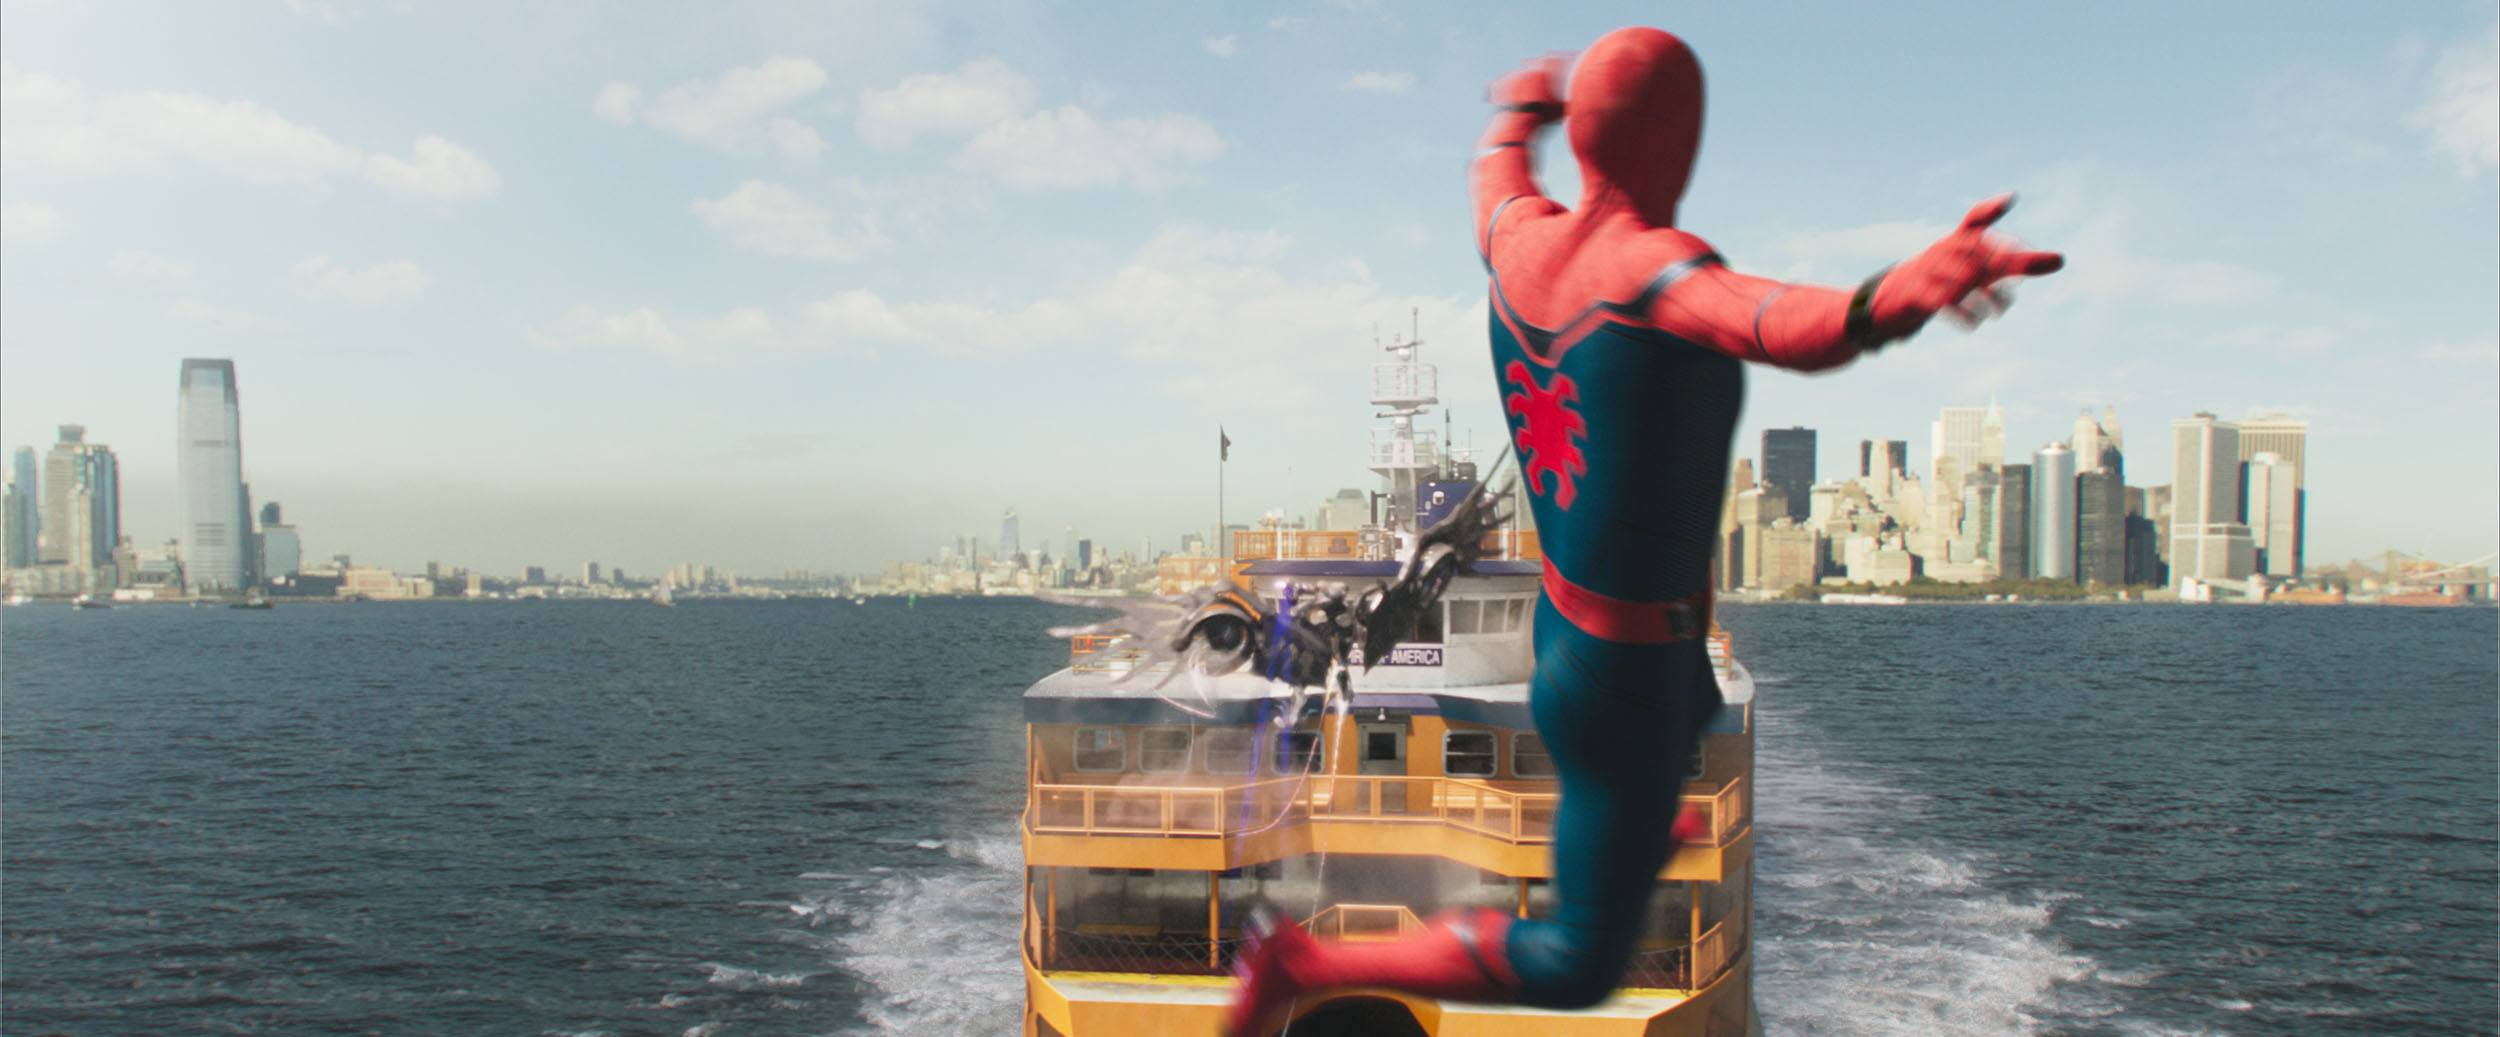 Spider-Man during the Staten Island Ferry sequence in Spider-Man: Homecoming (Columbia Pictures via Digital Domain)